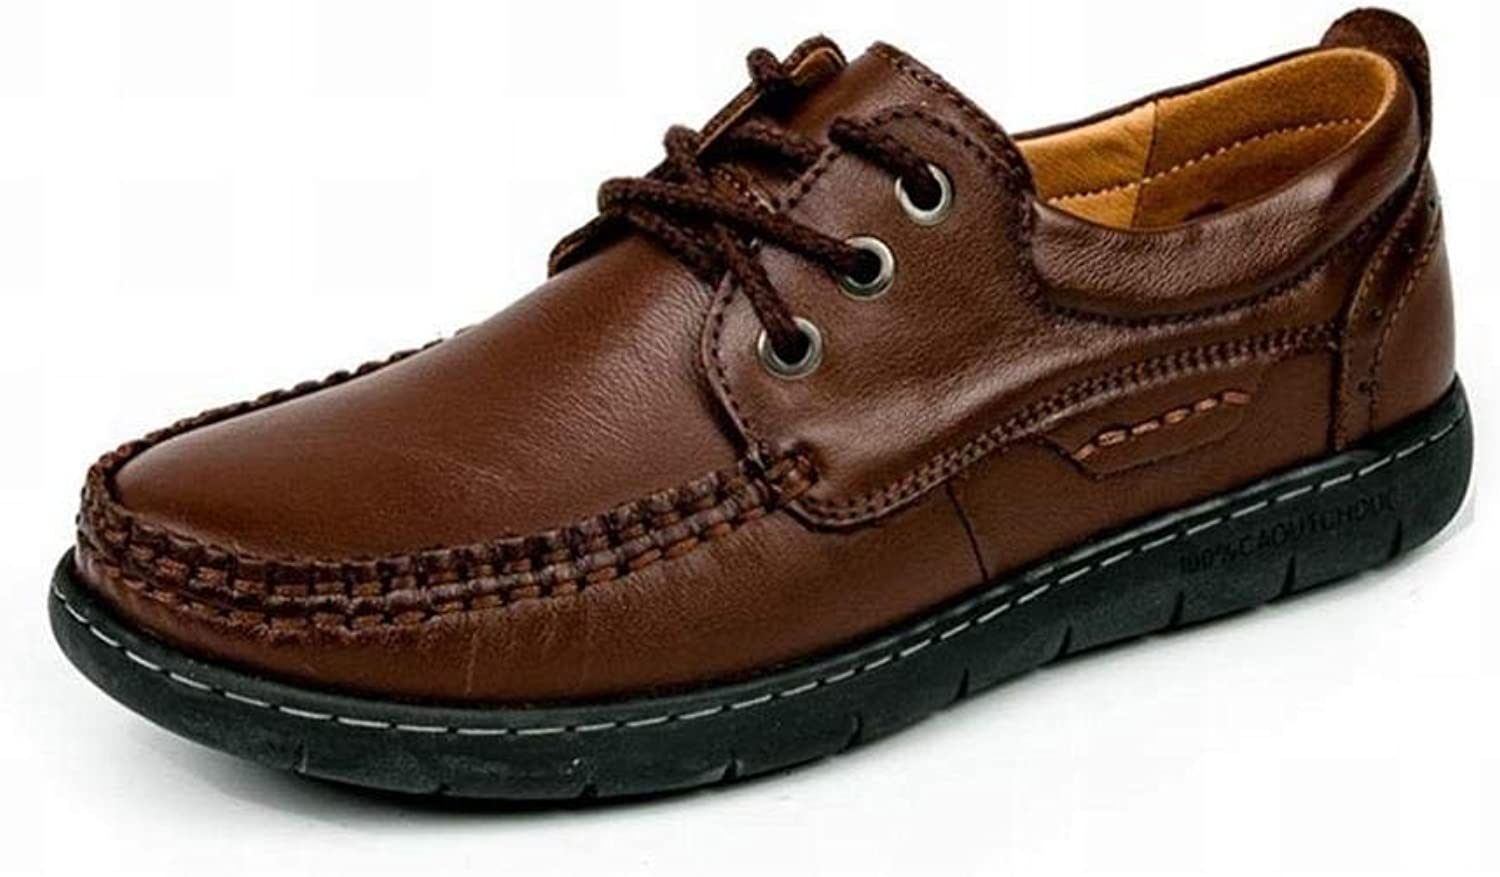 ZJ Men's Leather shoes Winter, Loafers Driving shoes, Oxfords Casual Breathable, Comfort Party & Amp; Evening Formal Business Work Lazy shoes